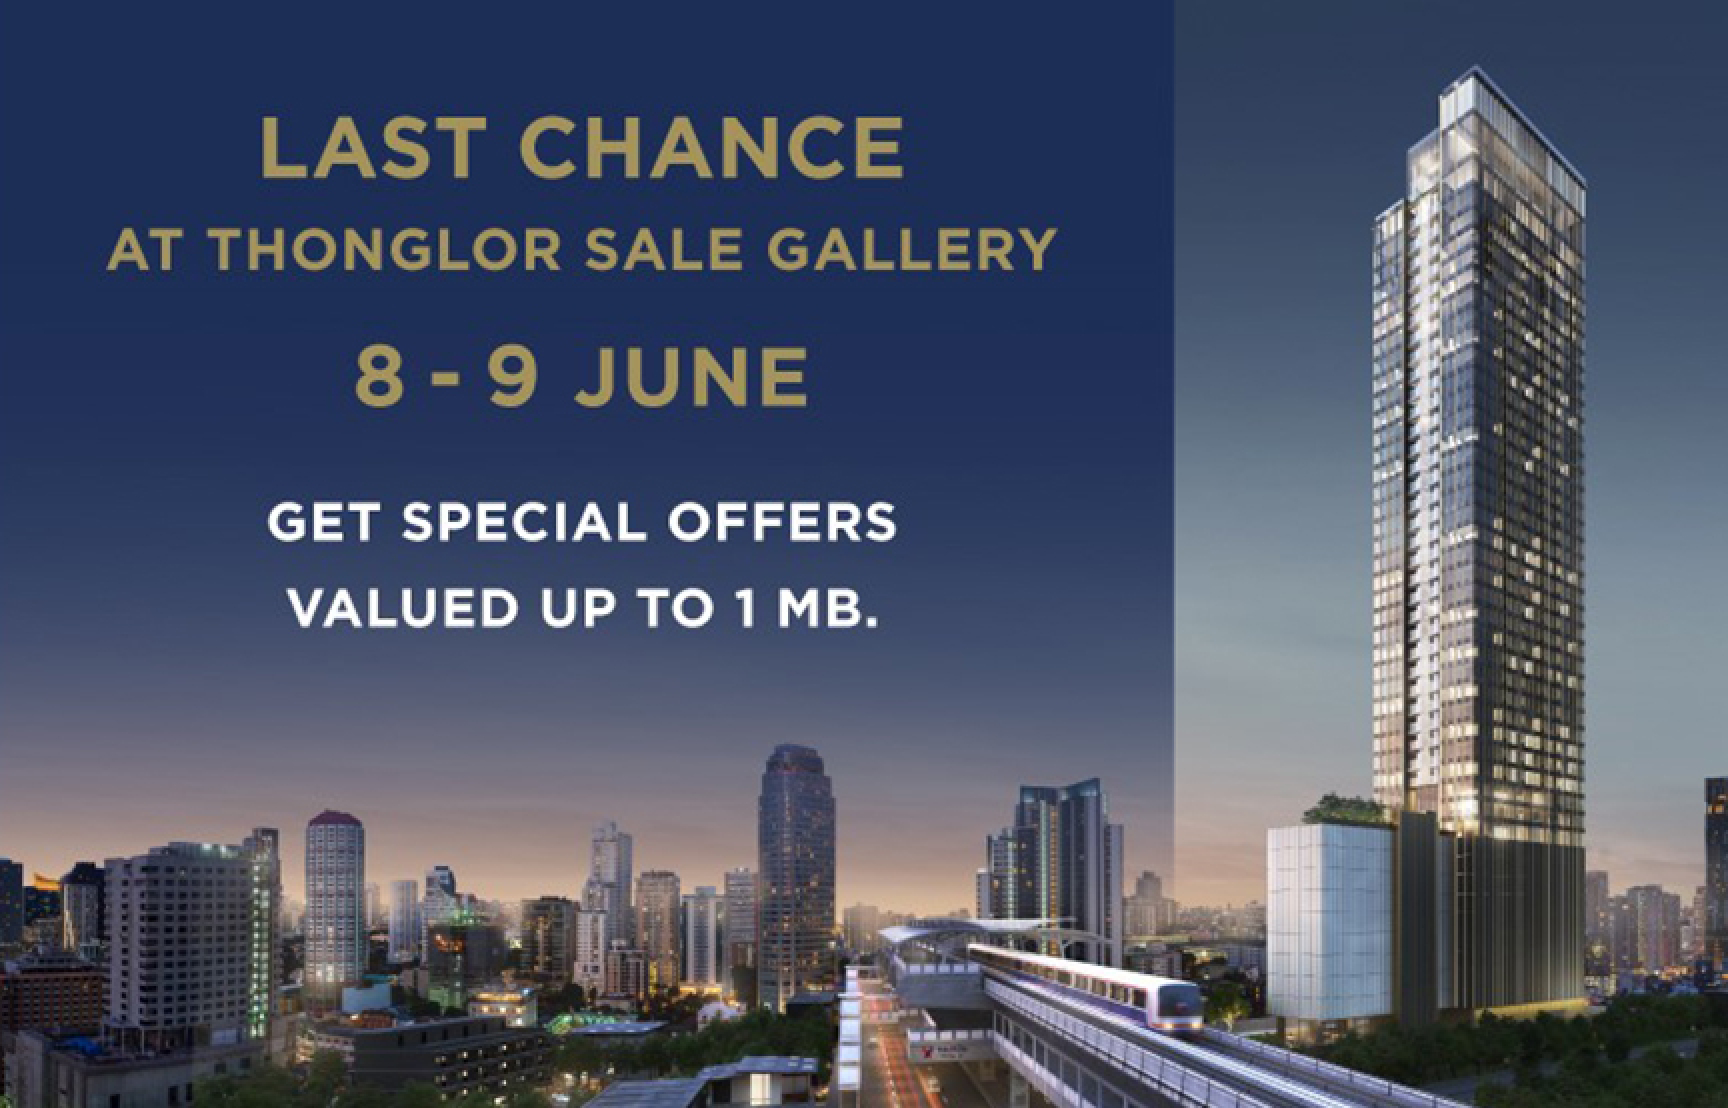 LAST CHANCE PROMOTION (24 MAY – 9 JUNE)